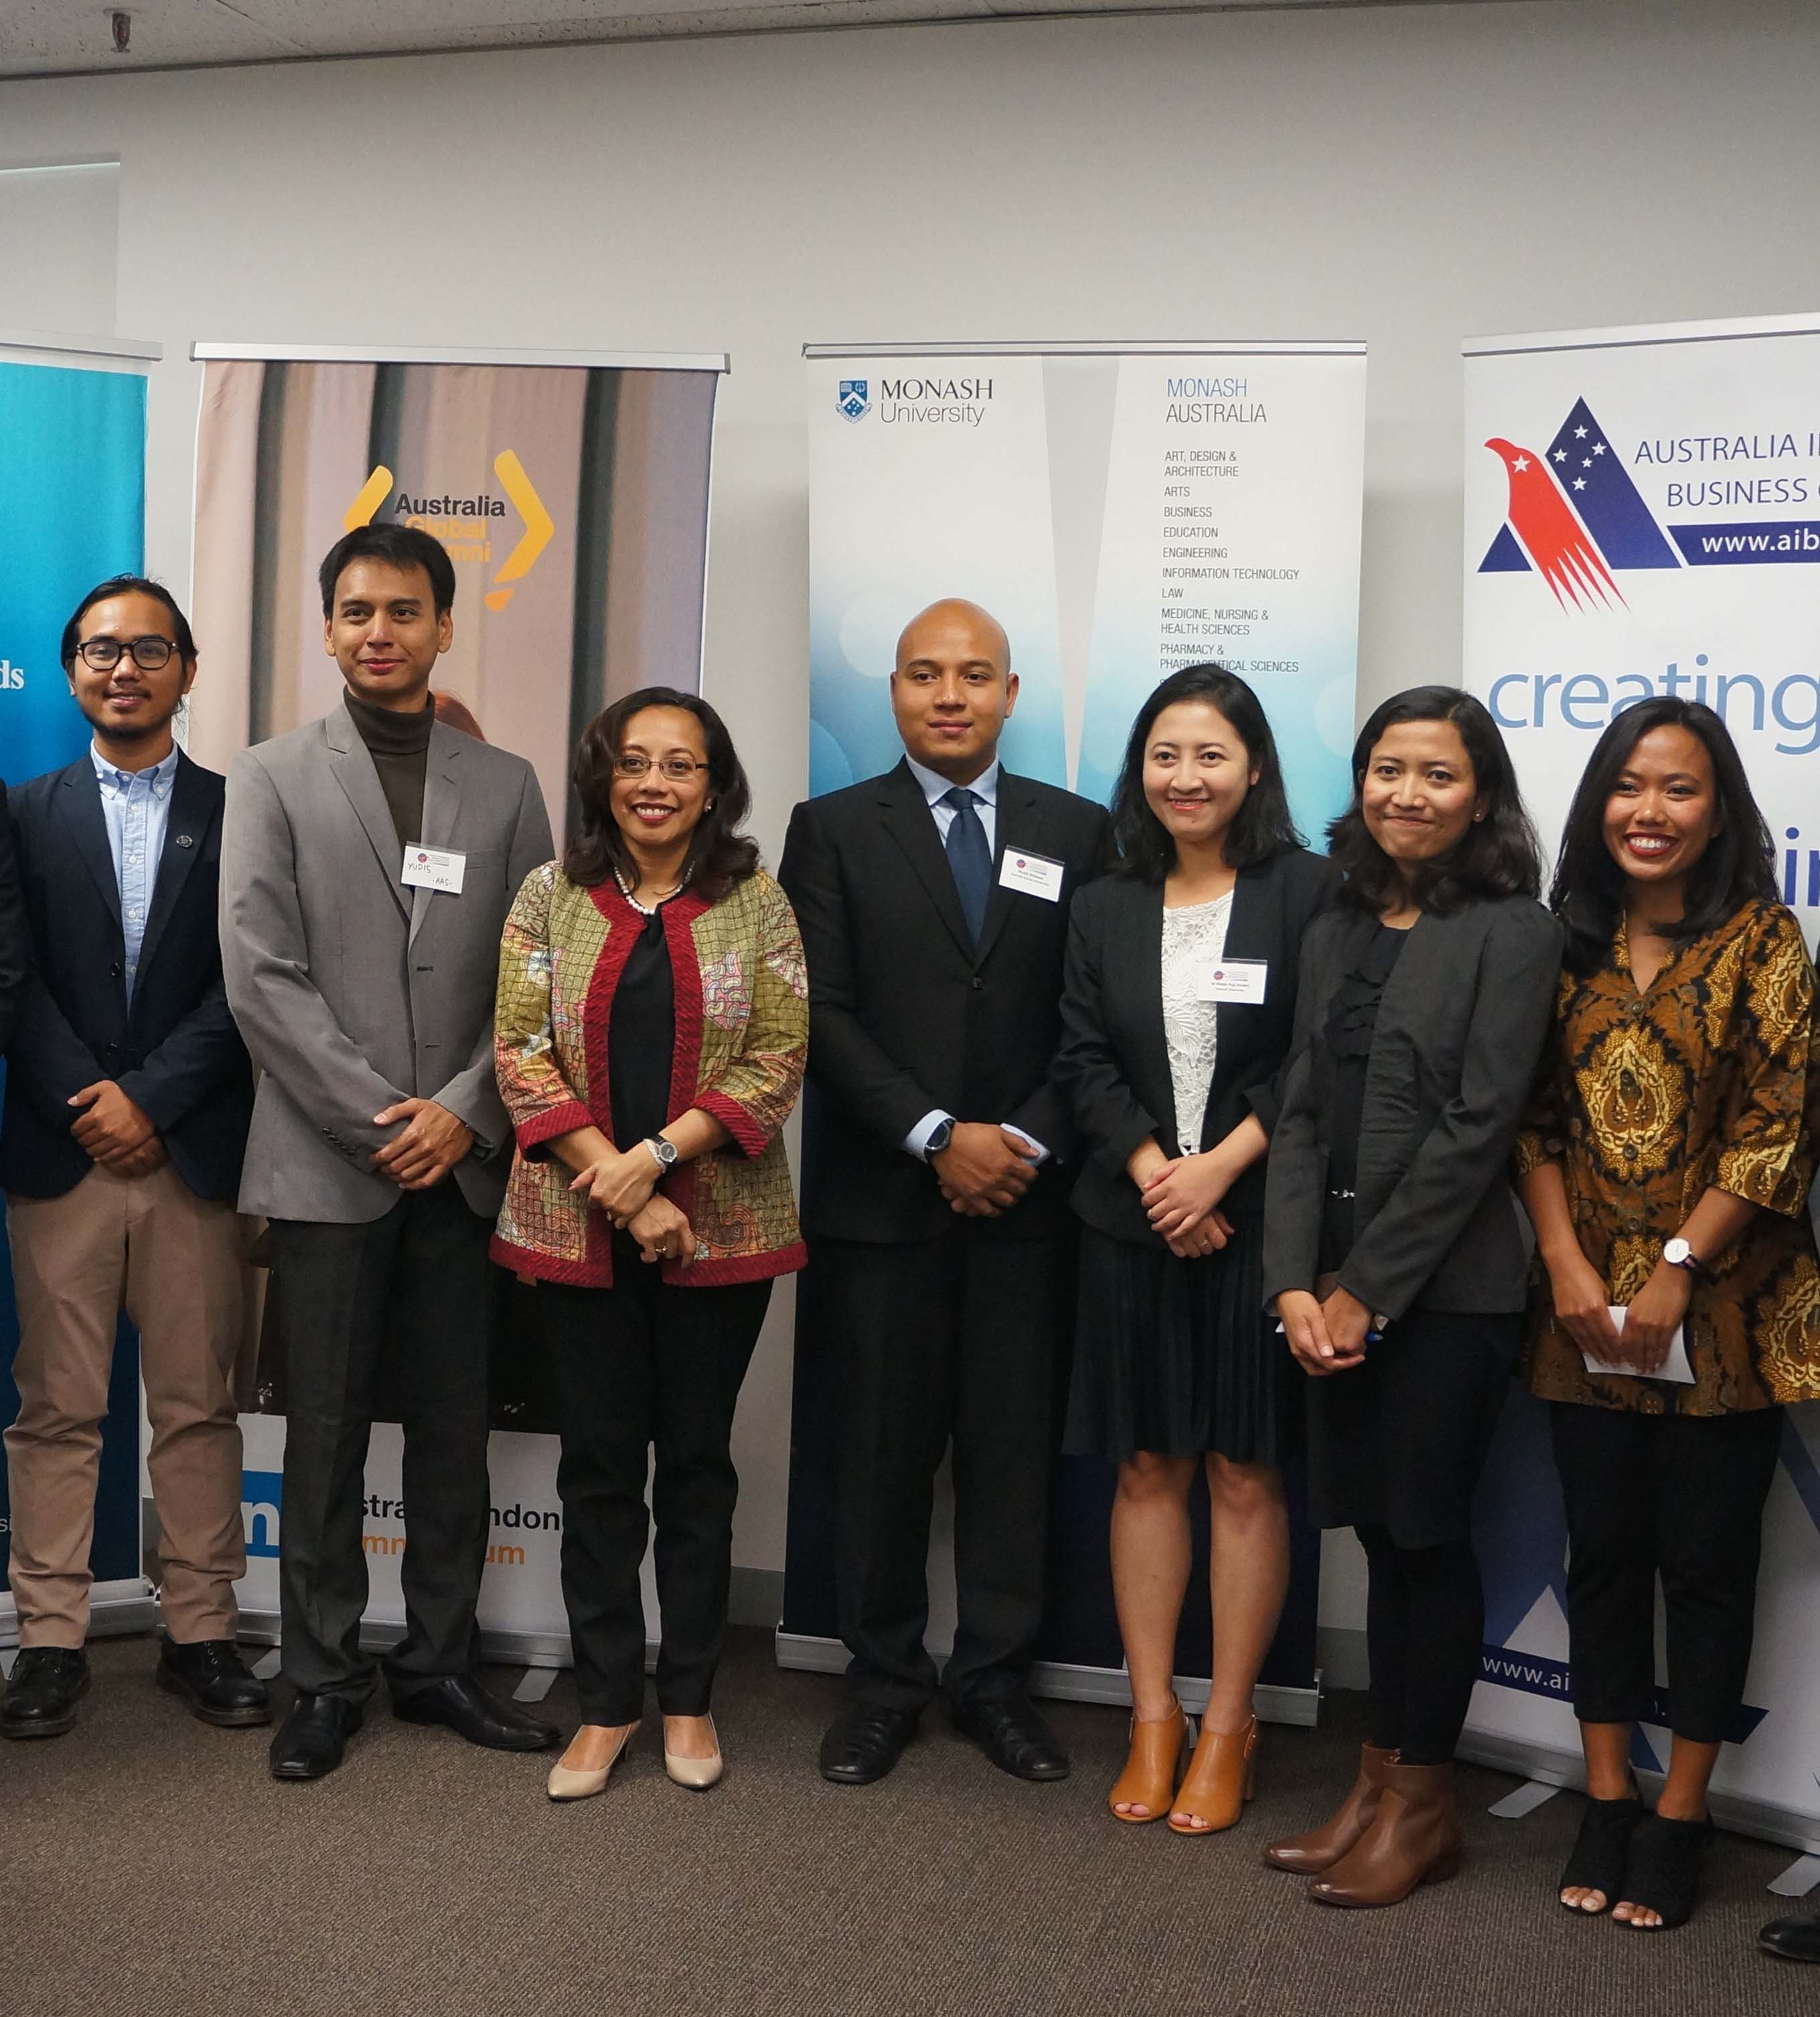 A group of Australia Awards scholars and staff smile and pose together during an On-Awards enrichment acvitiy in Melbourne.